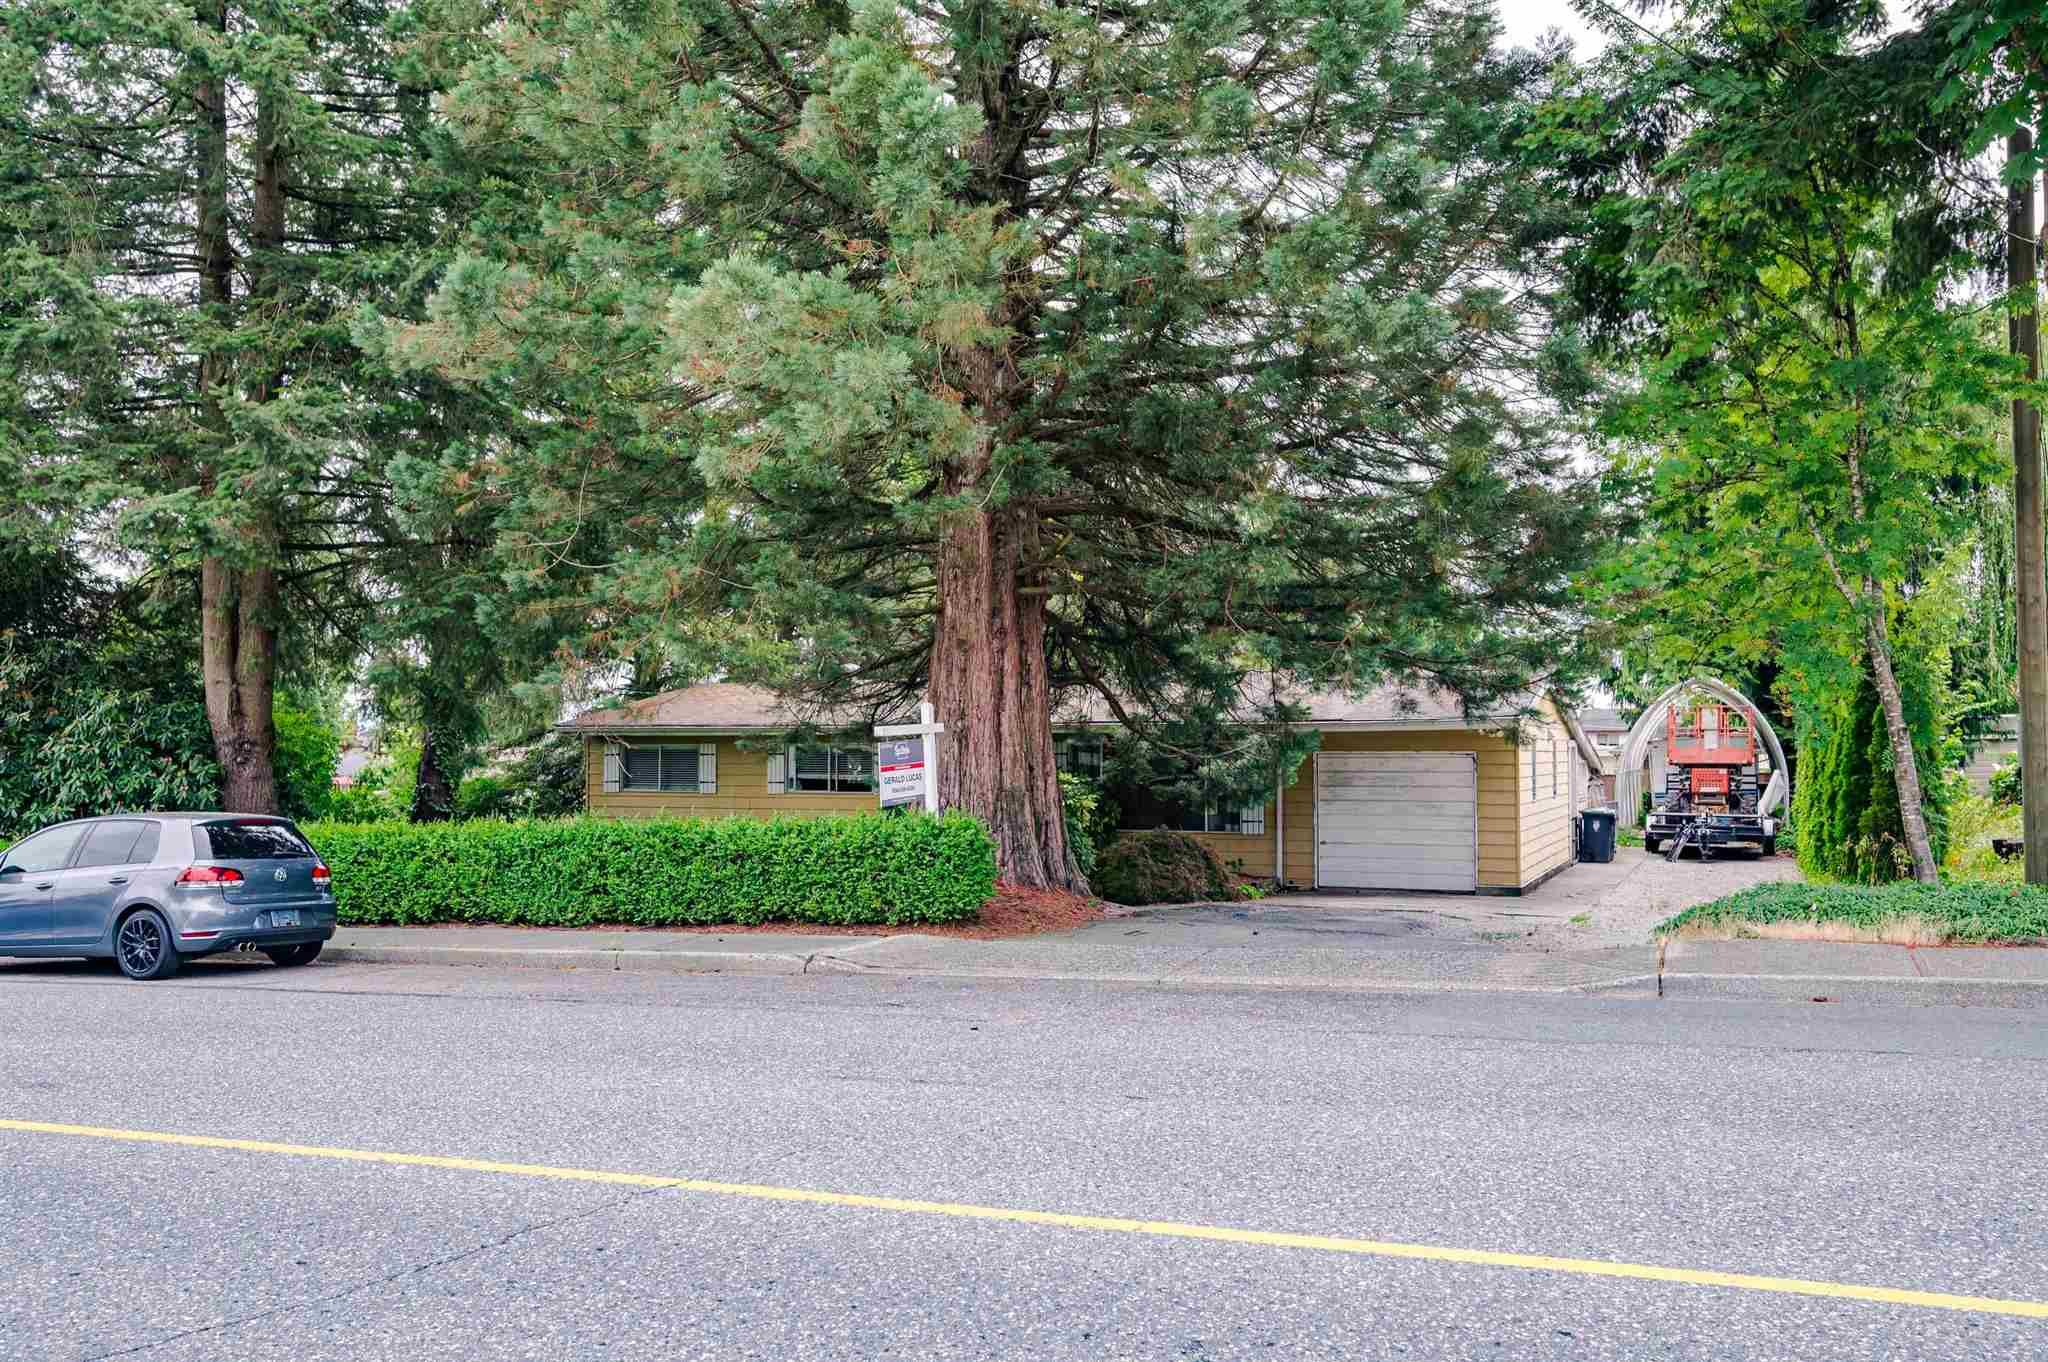 Main Photo: 26492 29 Avenue in Langley: Aldergrove Langley House for sale : MLS®# R2597876